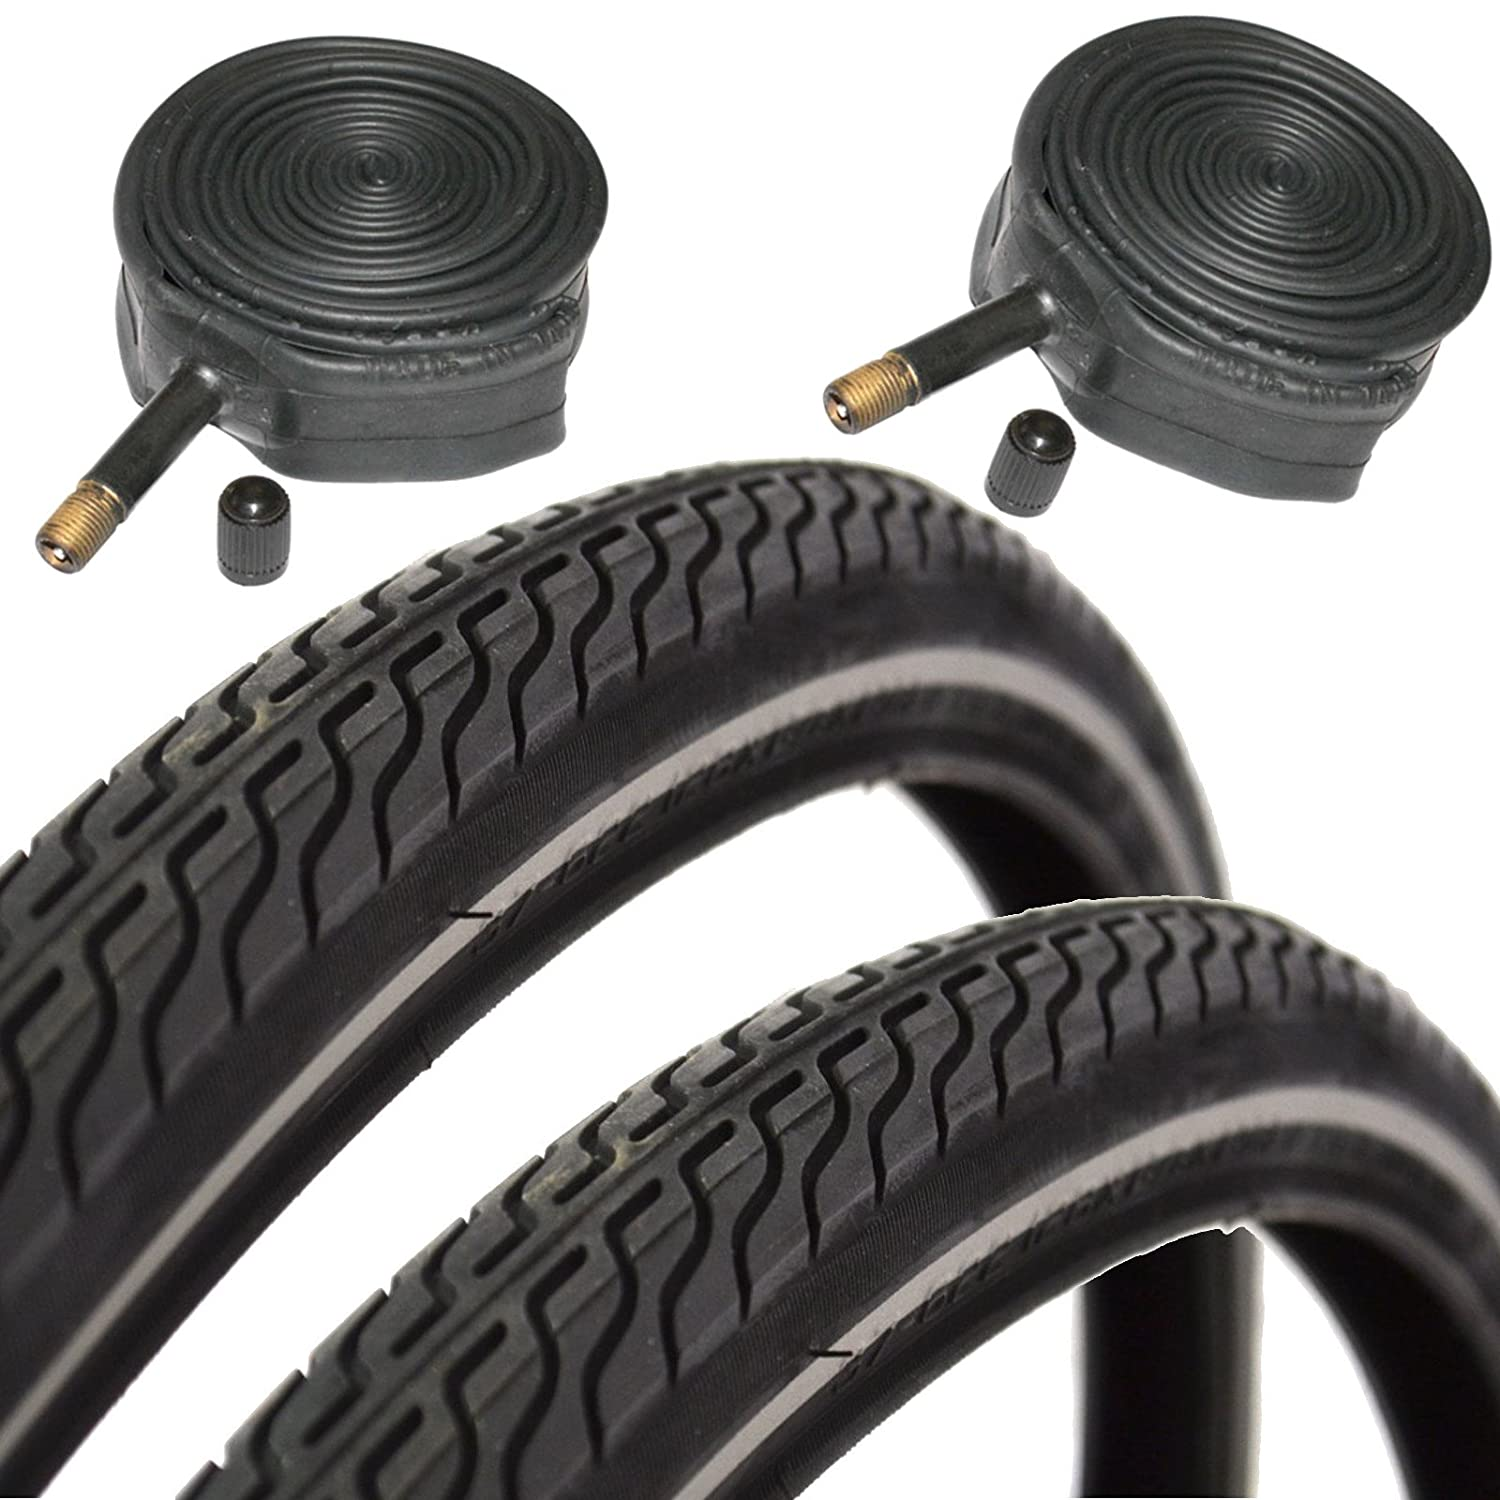 CST Raleigh T1262 Global Tour 700 x 35c Hybrid Bike Tyres with Schrader Tubes (Pair)